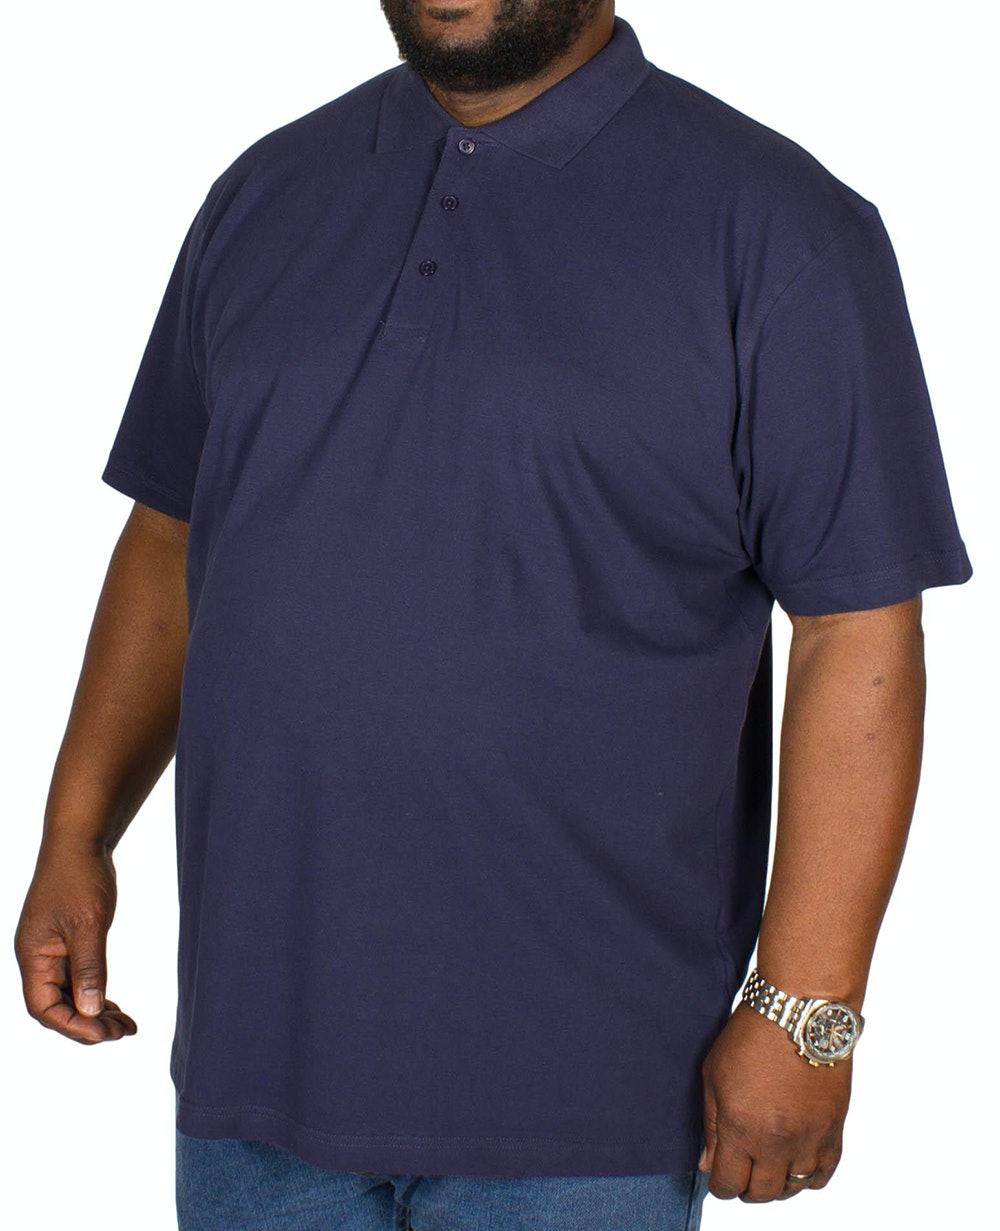 Bigdude Plain Polo Shirt Navy Tall